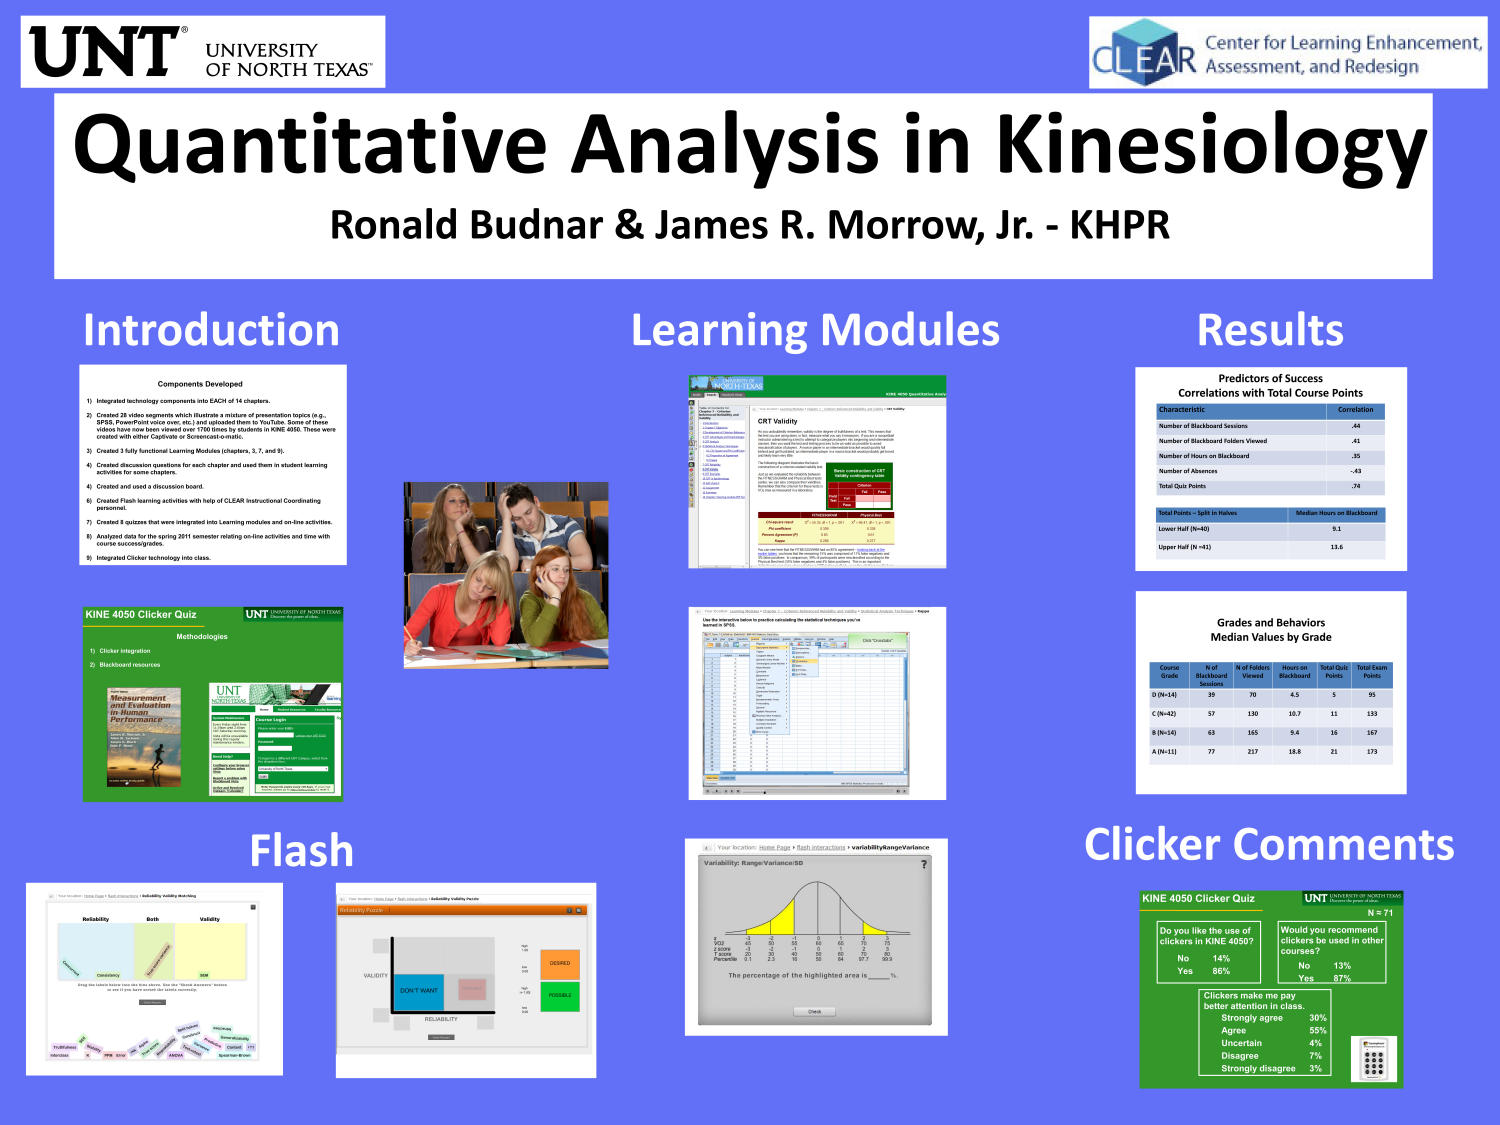 Quantitative Analysis in Kinesiology                                                                                                      [Sequence #]: 1 of 1